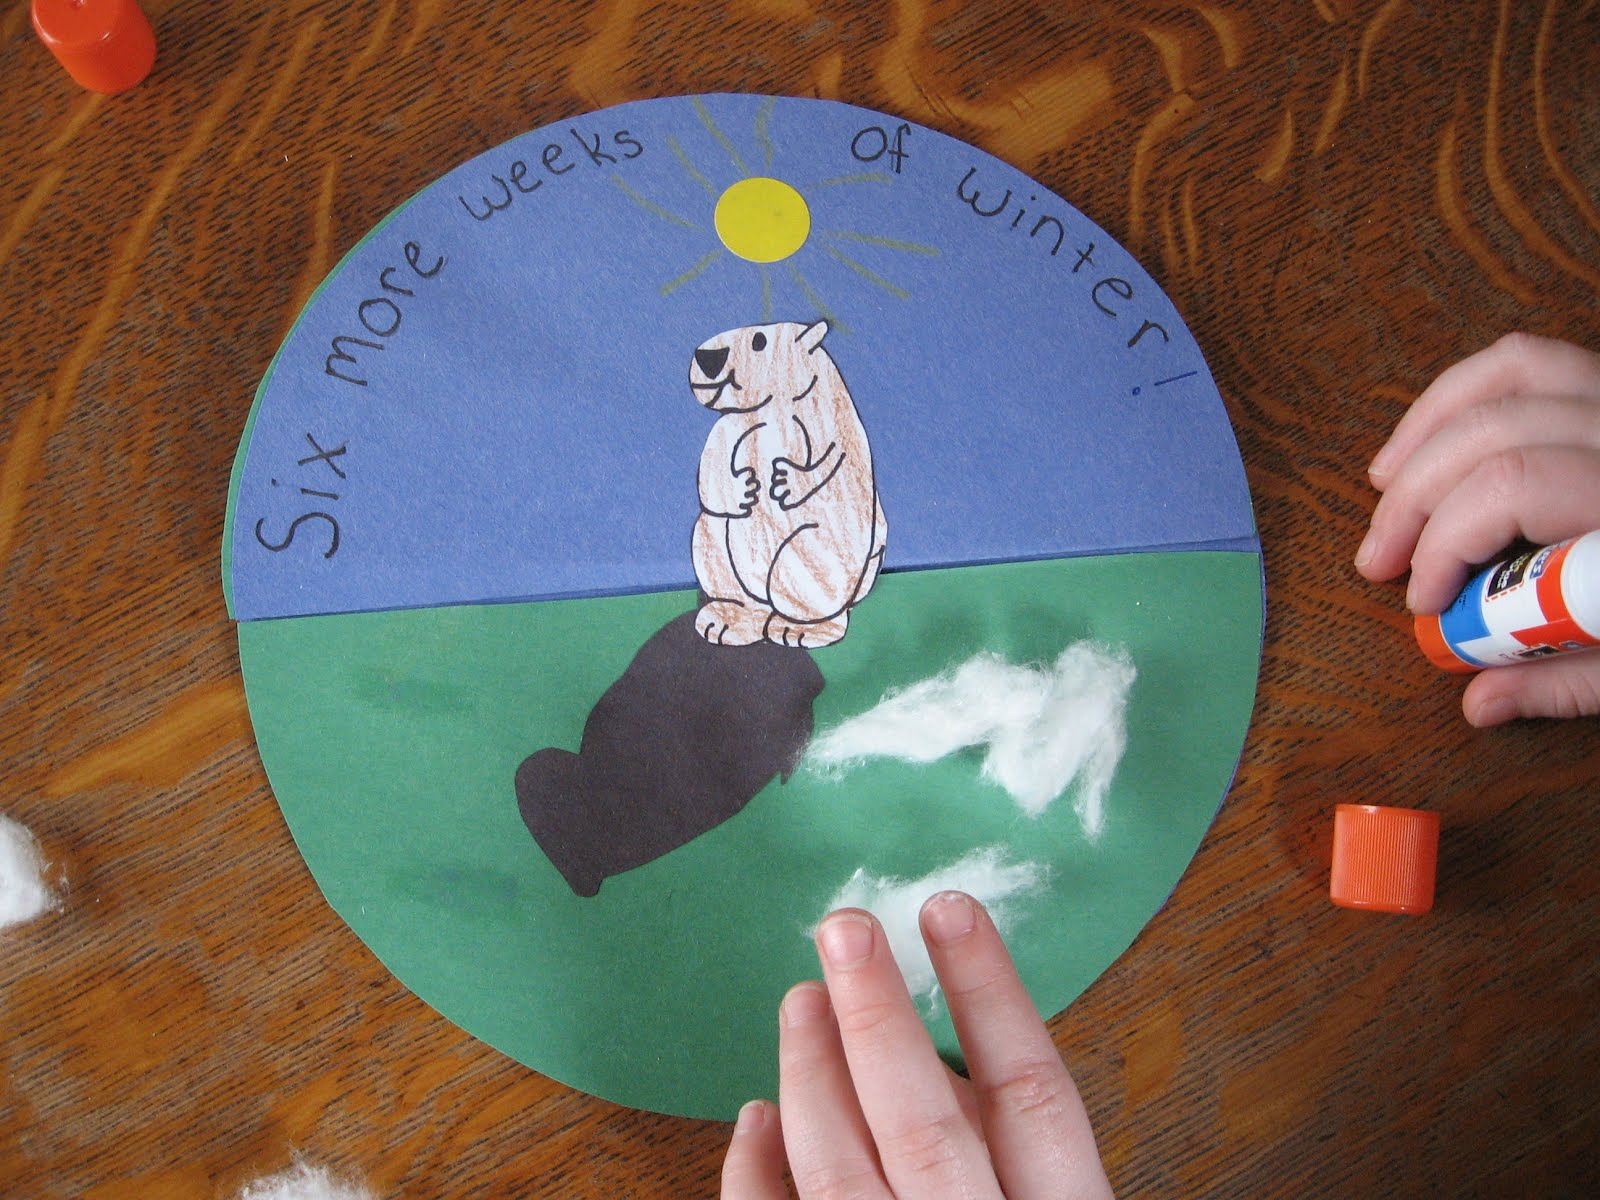 Almost unschoolers groundhog day craft for Groundhog day crafts for preschoolers